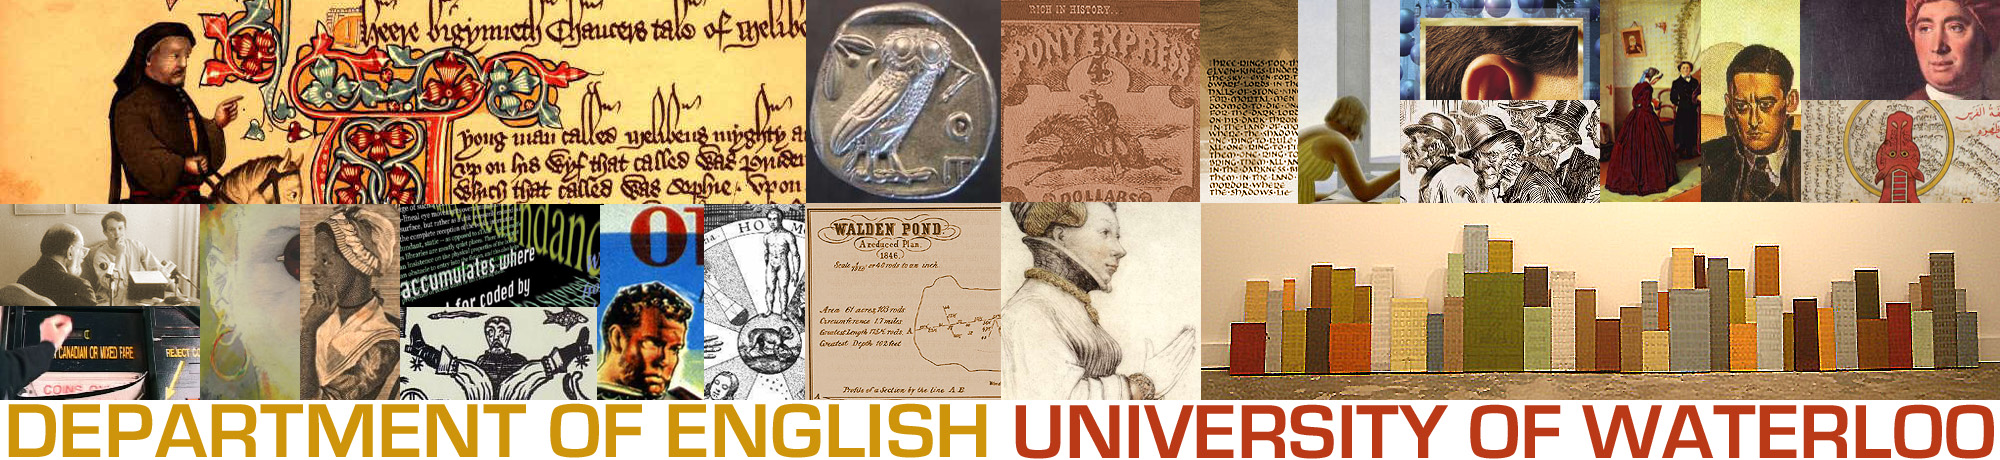 Banner for Waterloo English with a collage of English-related images.